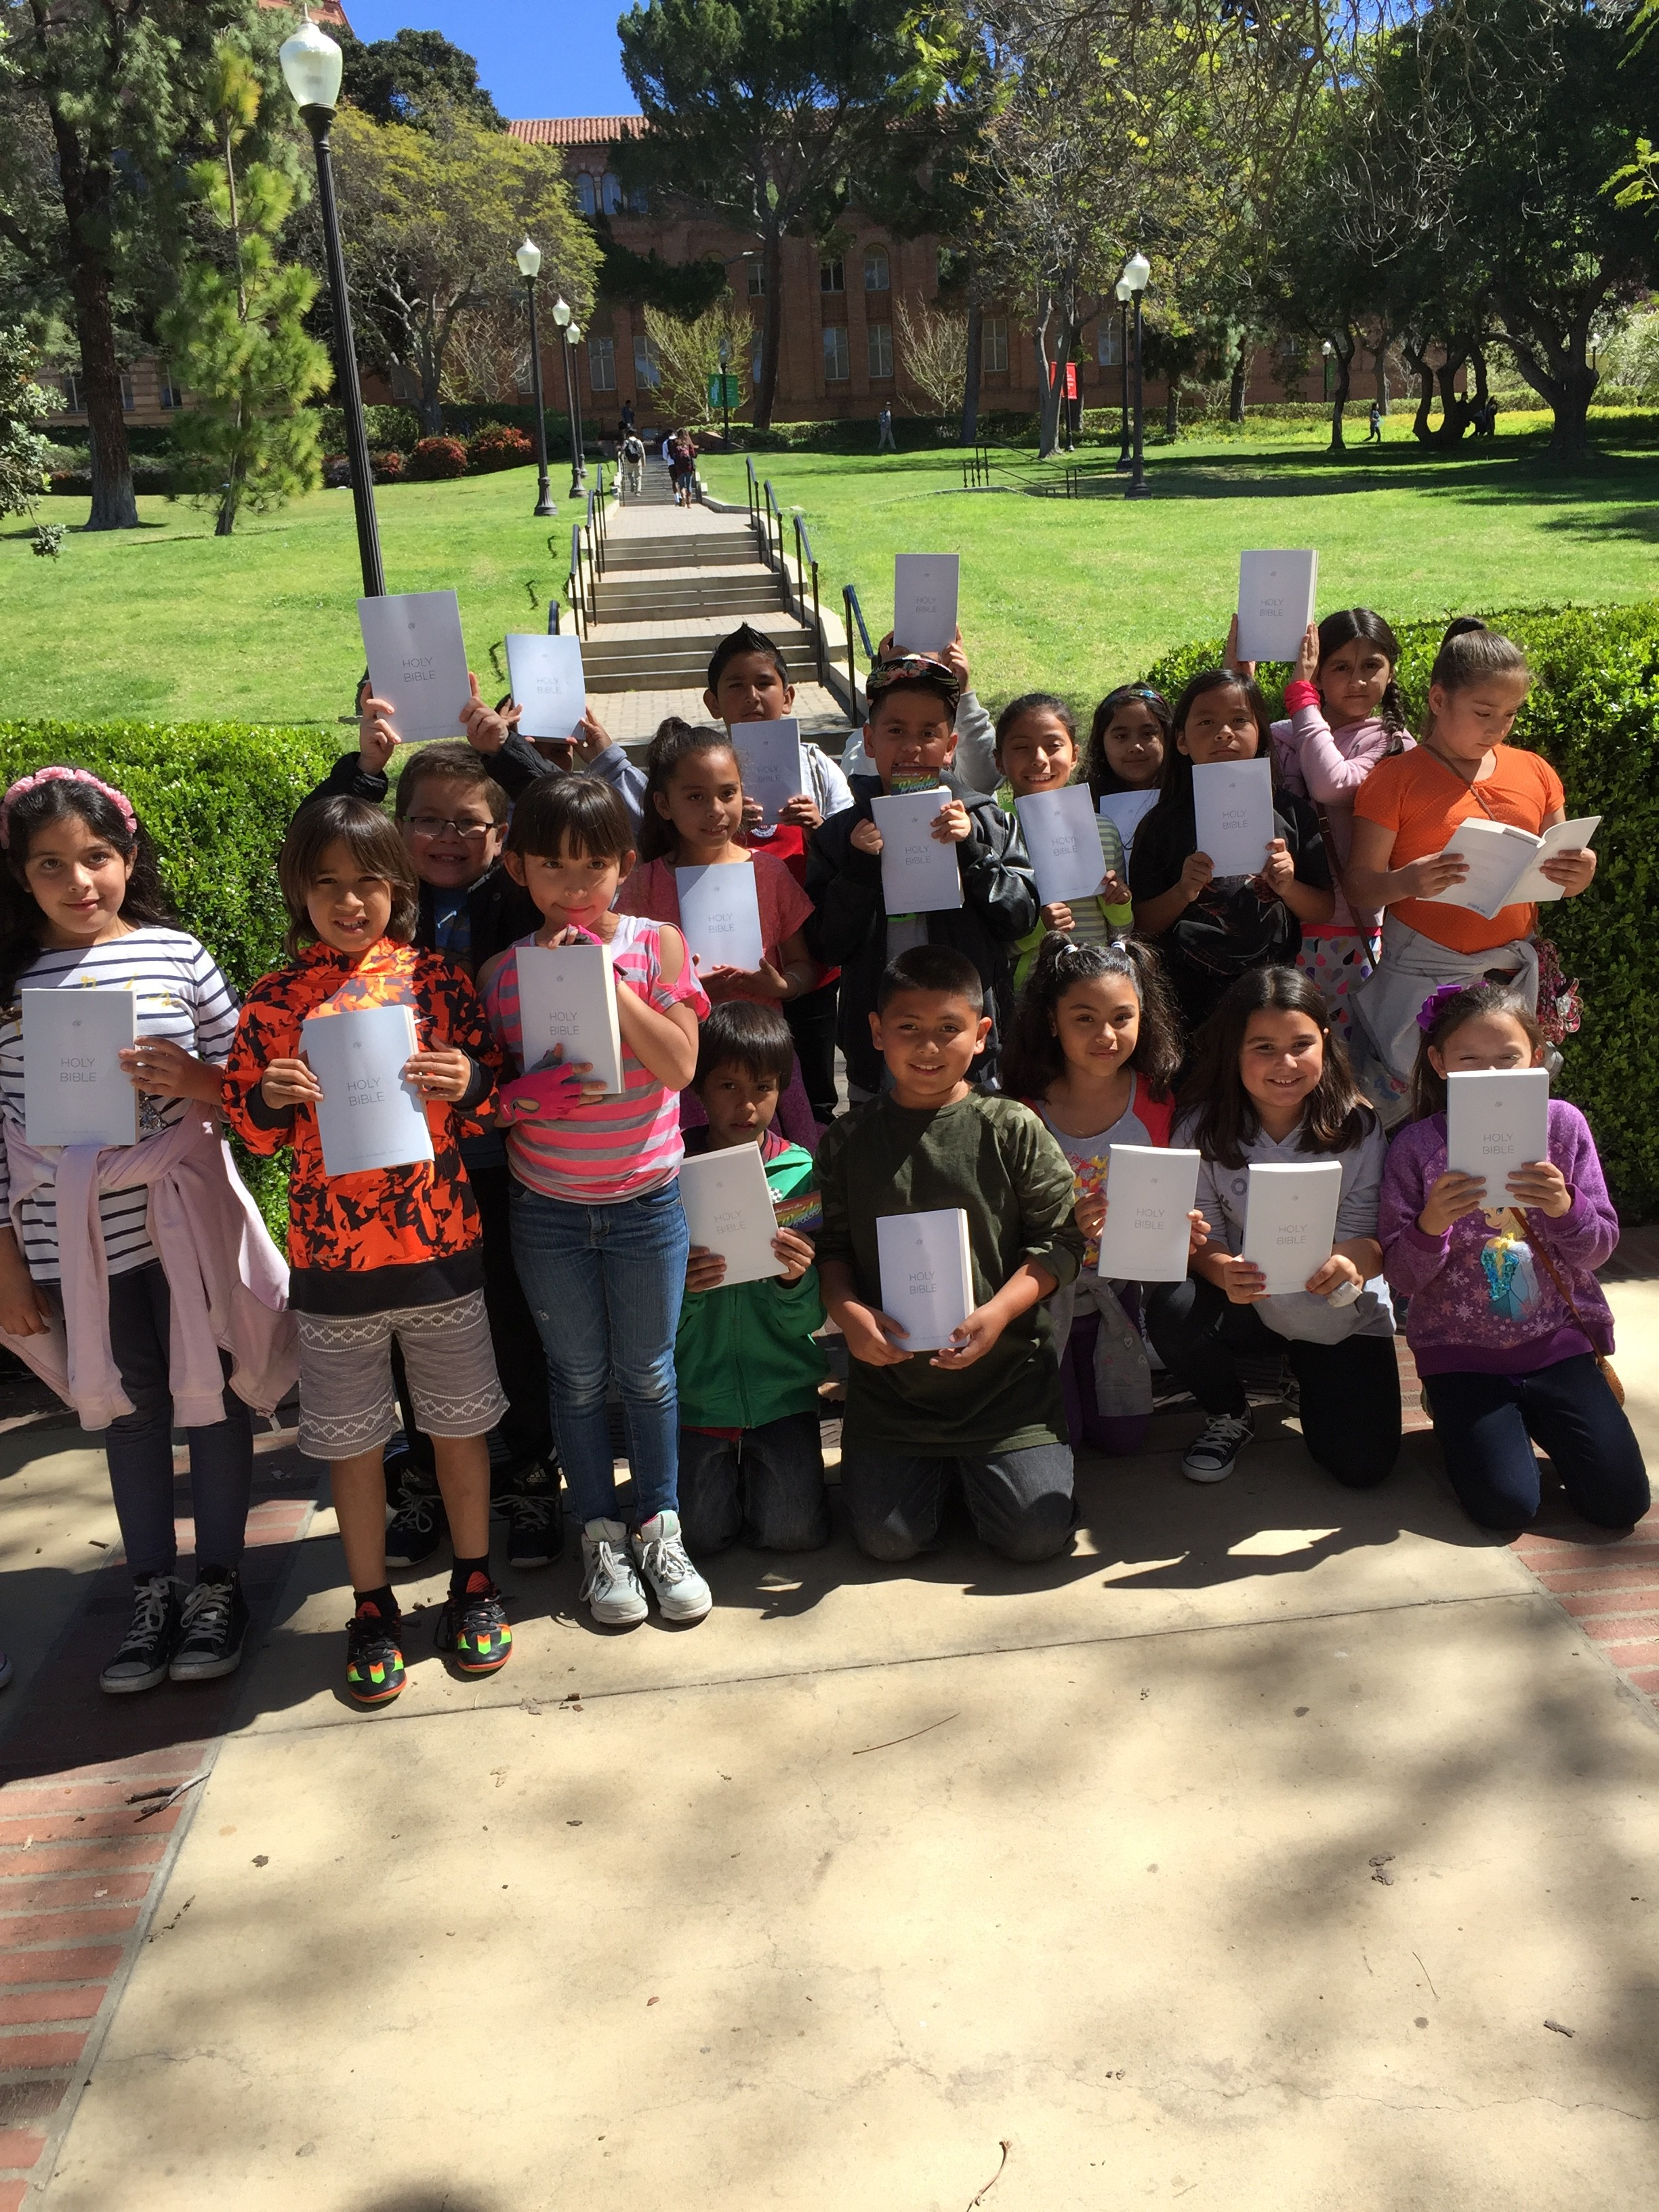 UCLA: a class picture you won't often see. An elementary school class on a field trip at UCLA receives free bibles.